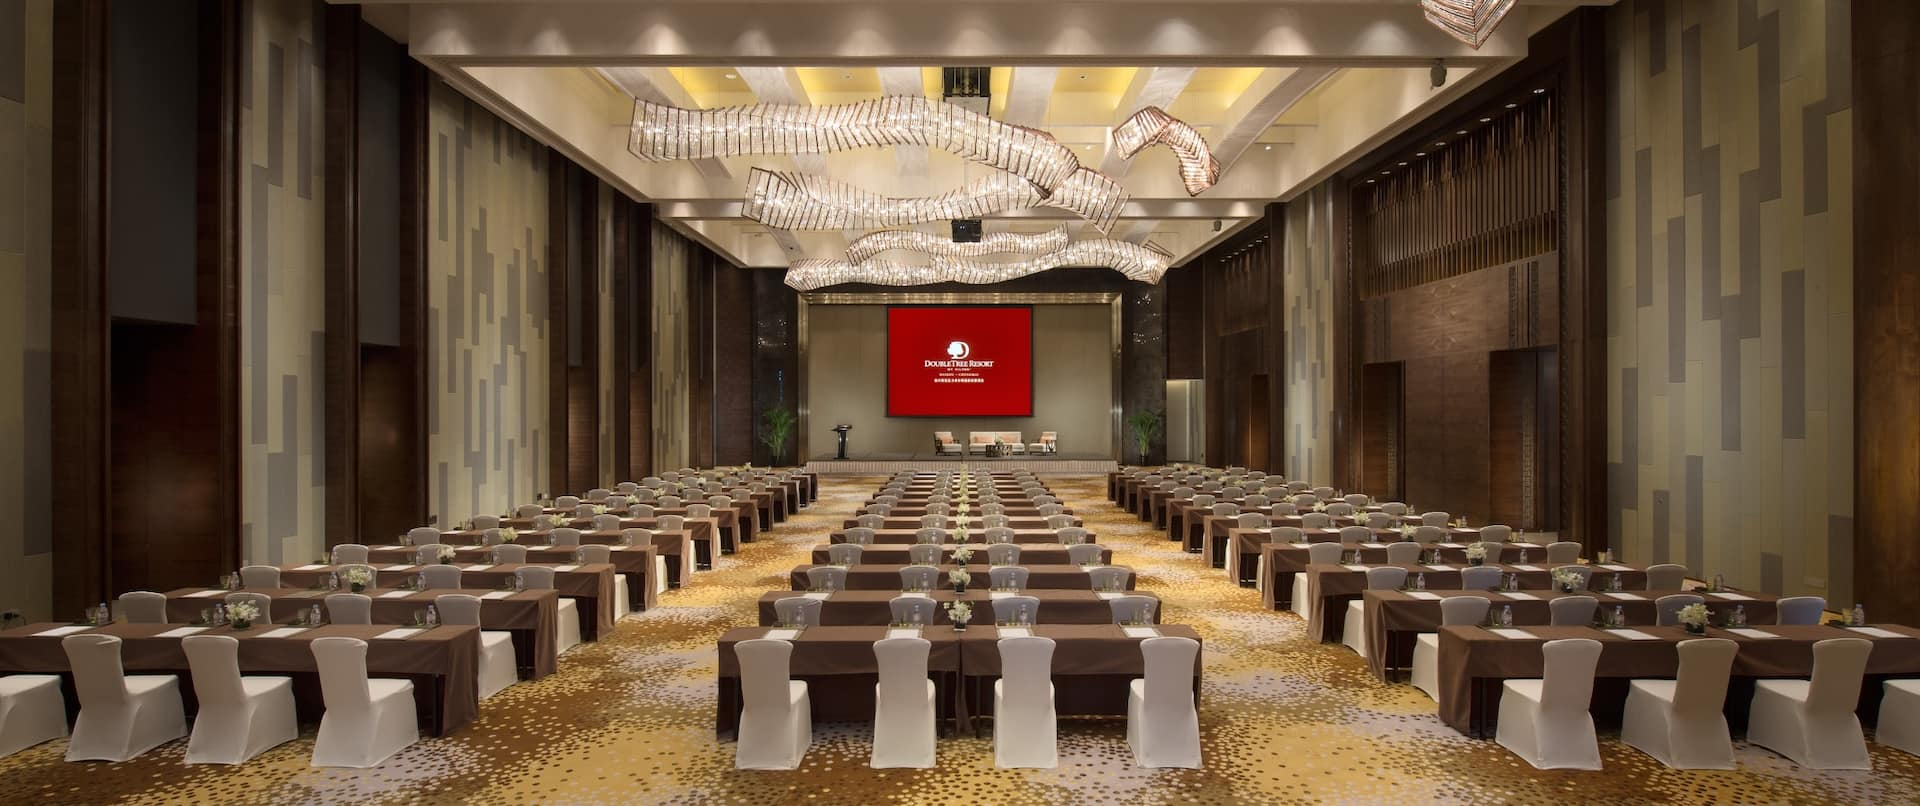 Grand Ball Room Classroom Set up